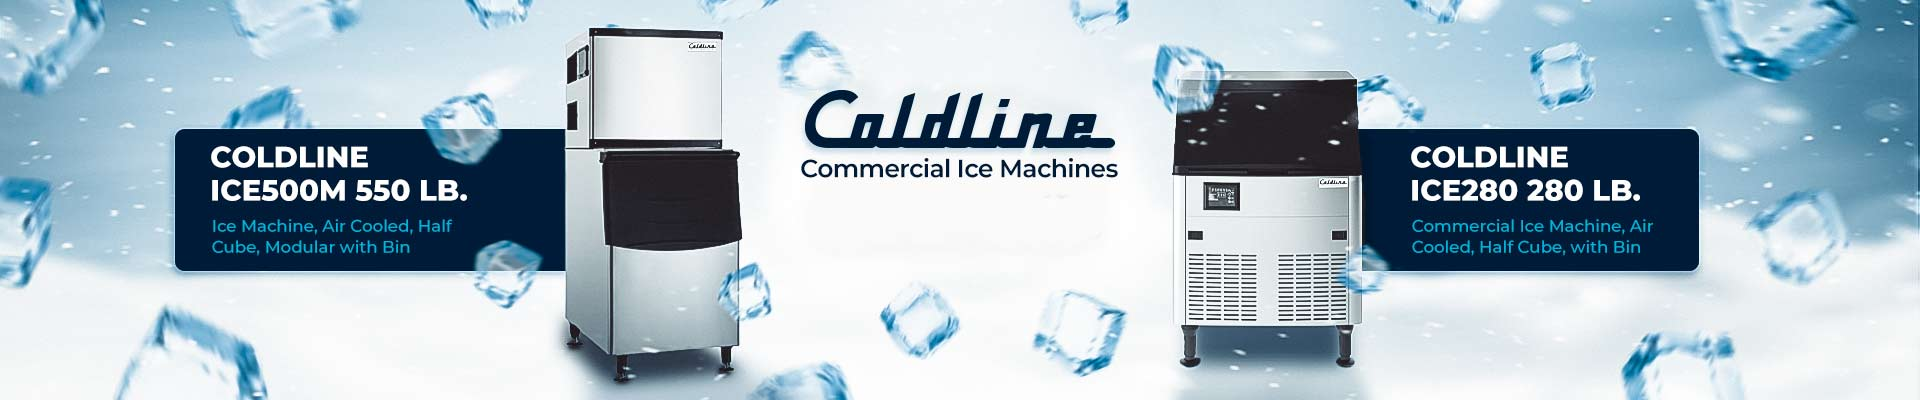 Coldline Commercial Ice Makers